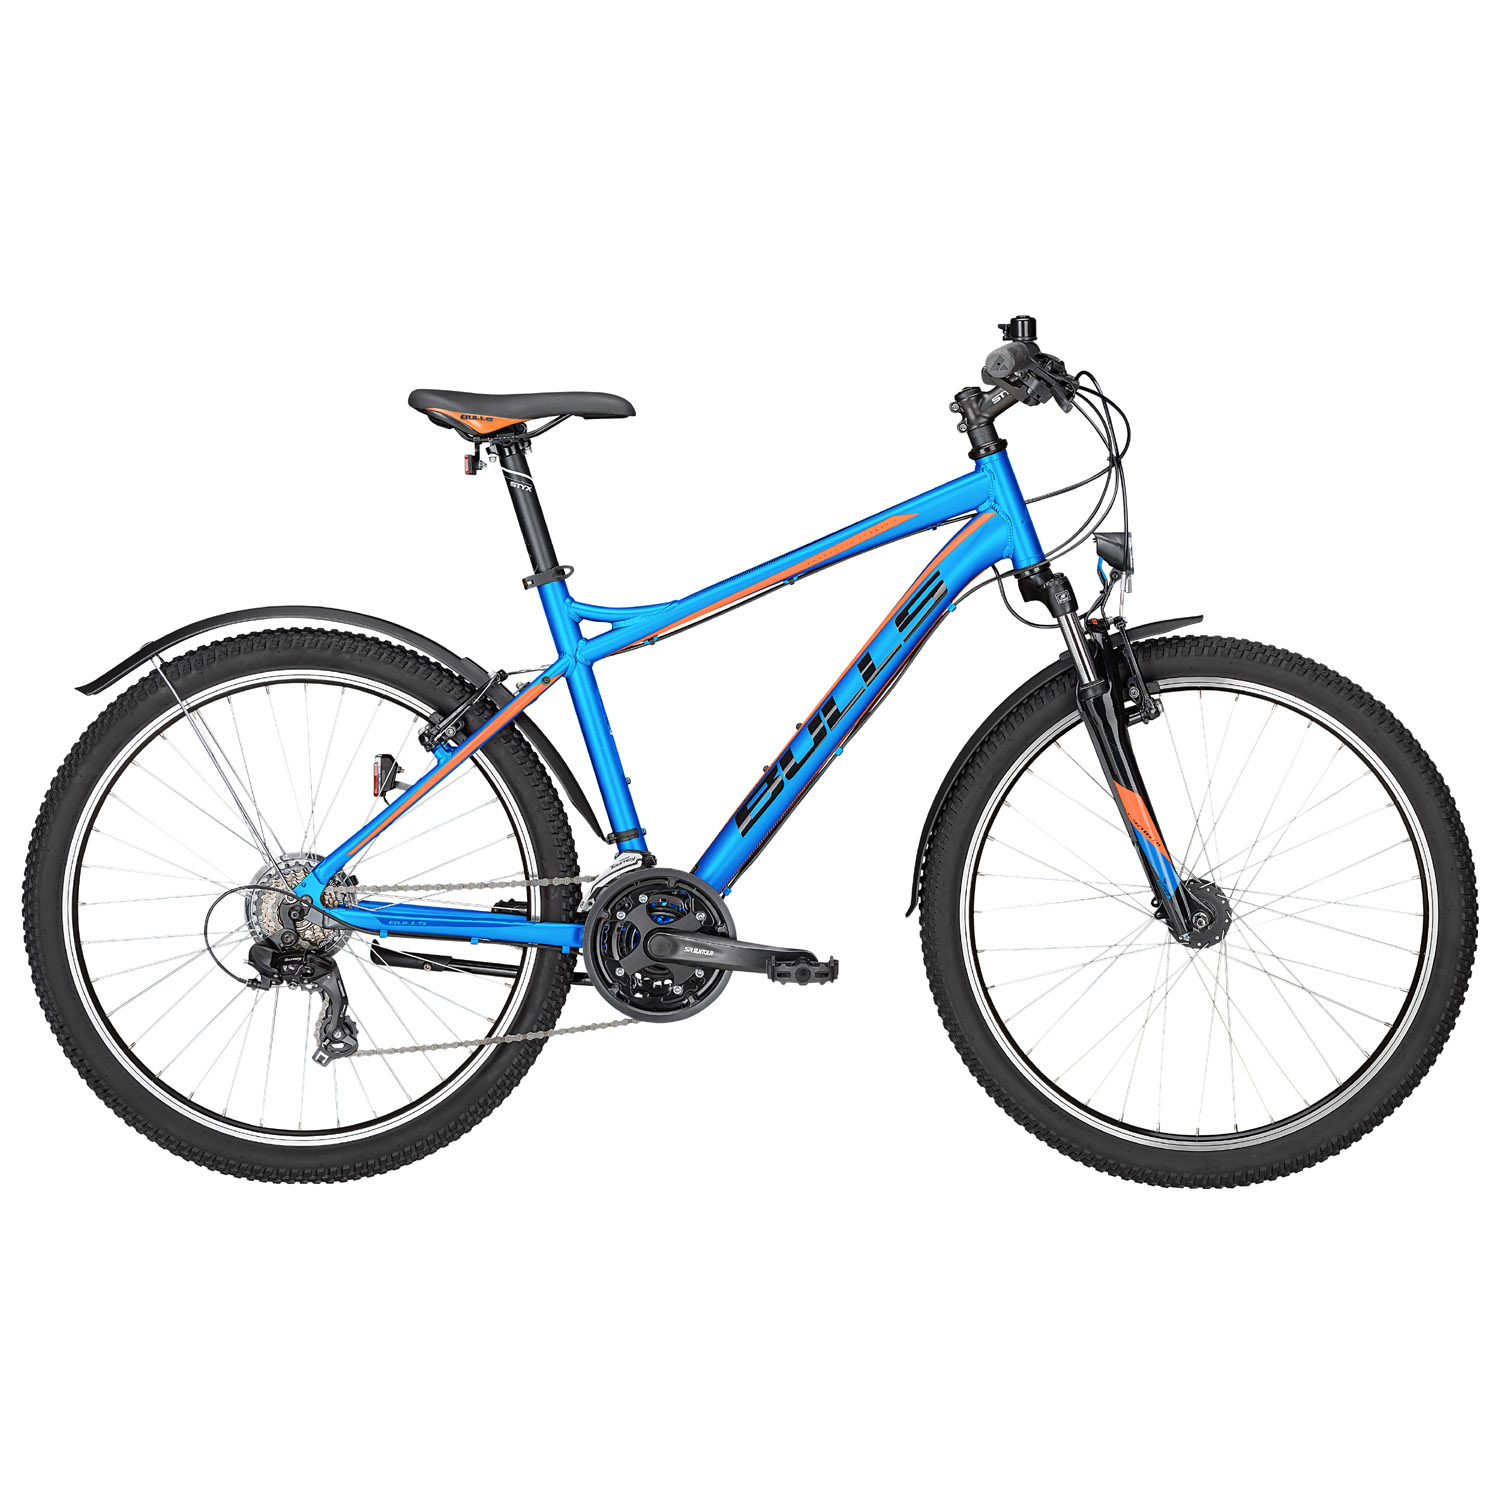 bulls sharptail street 1 mountainbike 26 zoll 46 cm. Black Bedroom Furniture Sets. Home Design Ideas